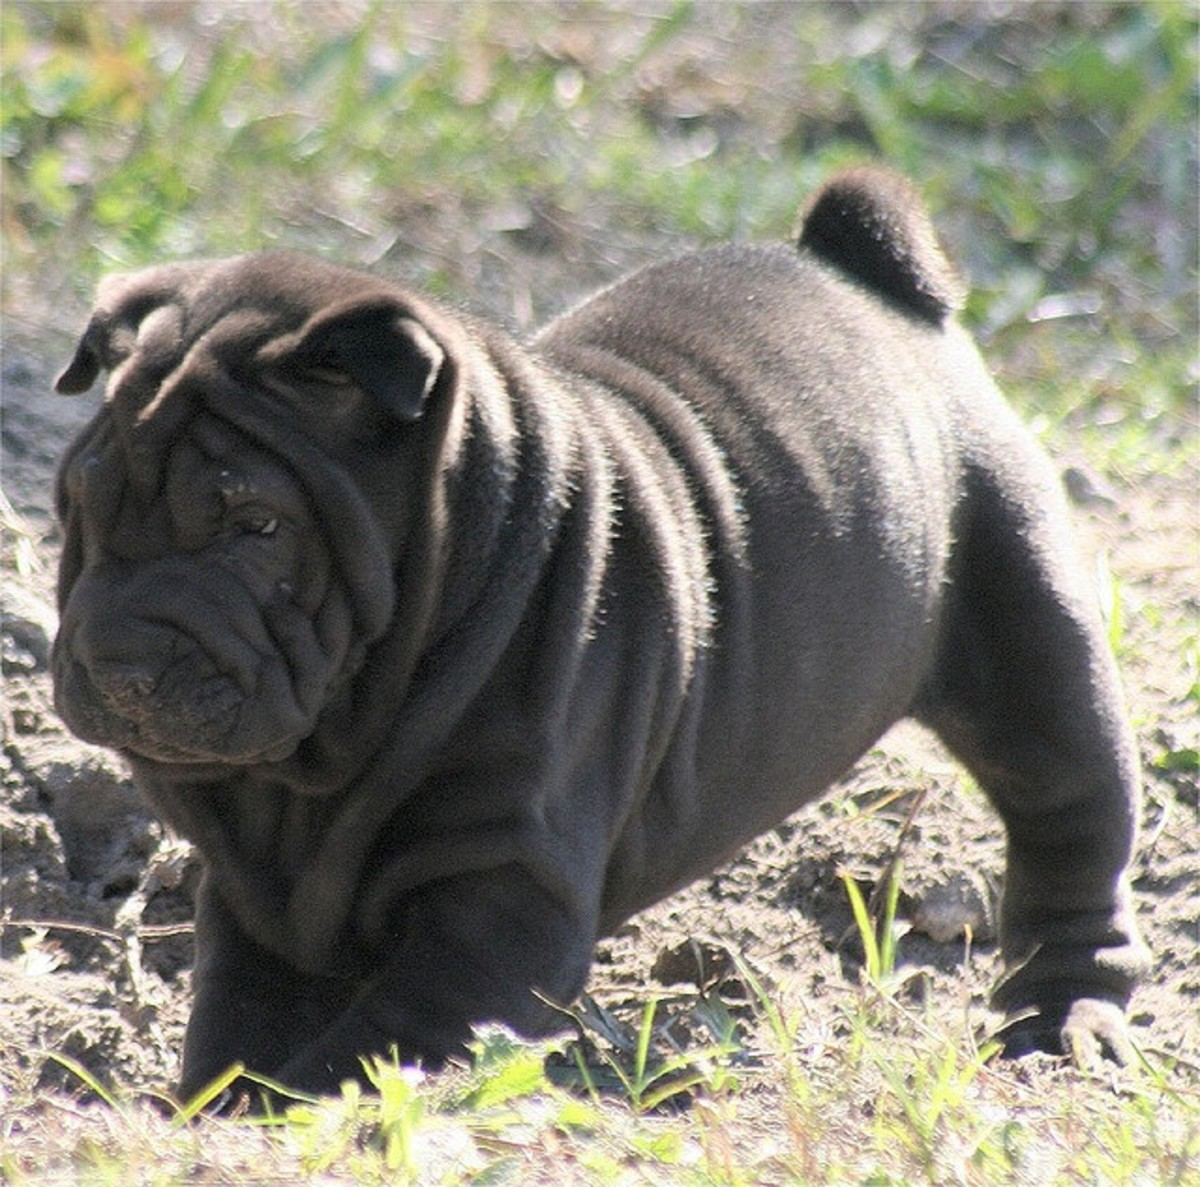 Shar Peis can come in several colors.Some prefer basic black.